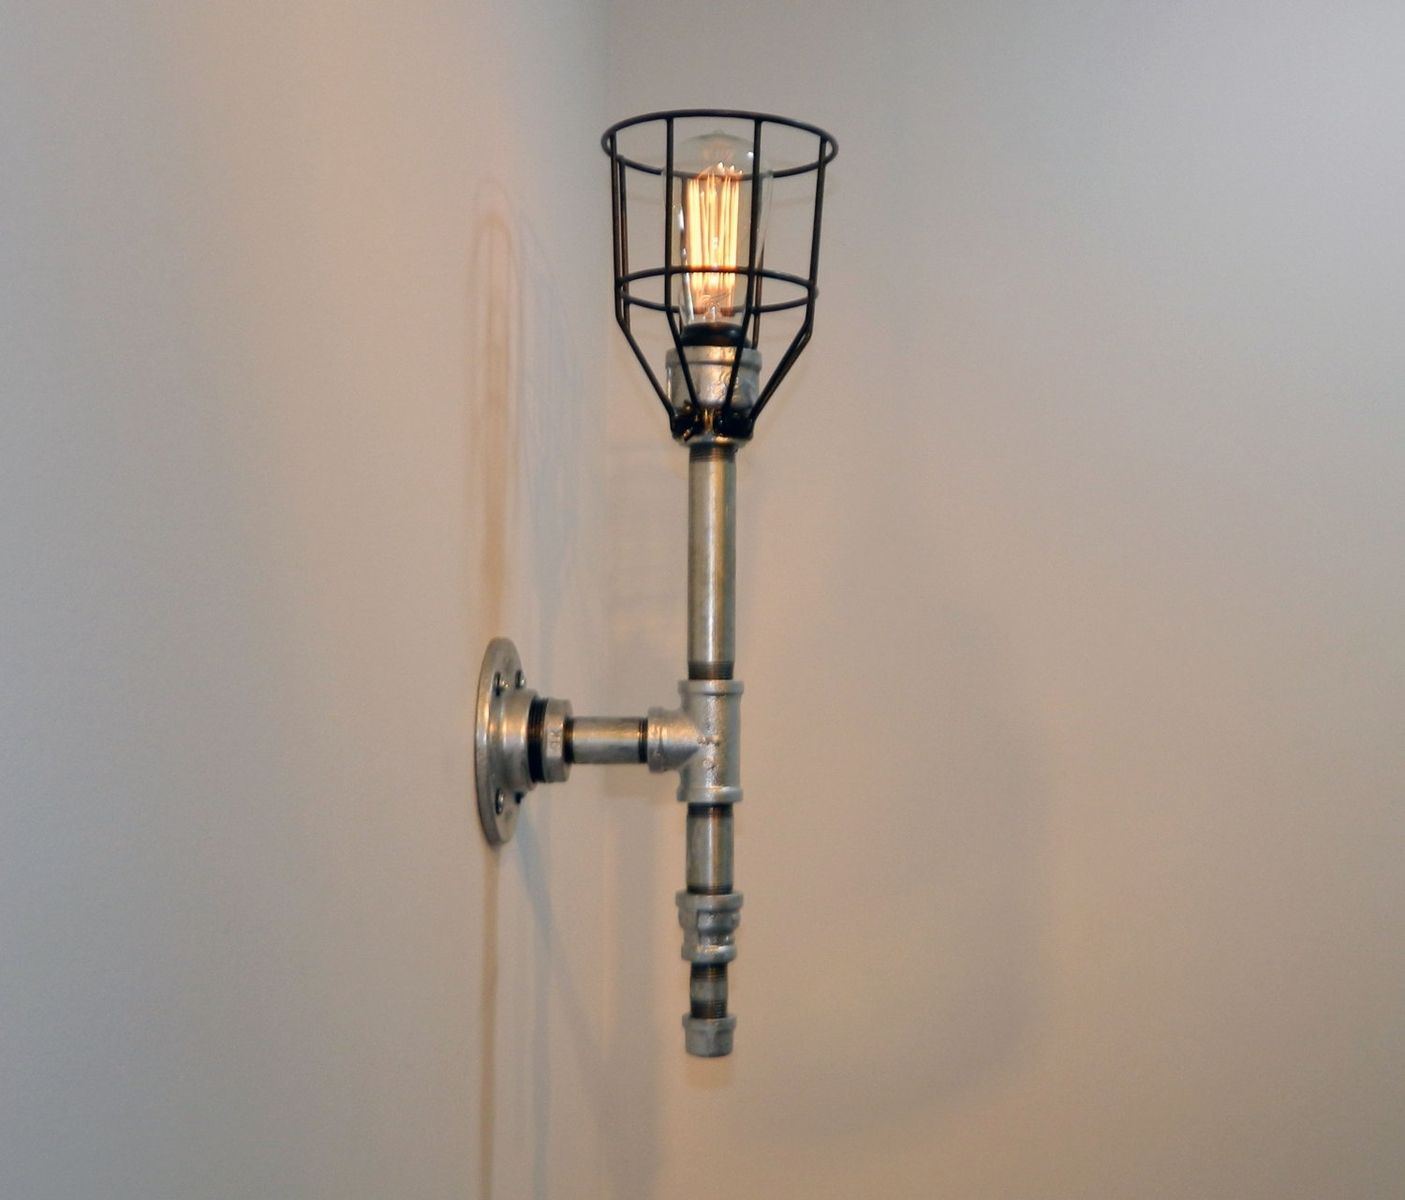 Industrial Iron Wall Sconces : Hand Made Wall Sconce: Galvanized Malleable Iron - Industrial Steampunk by Milton Douglas lamp ...